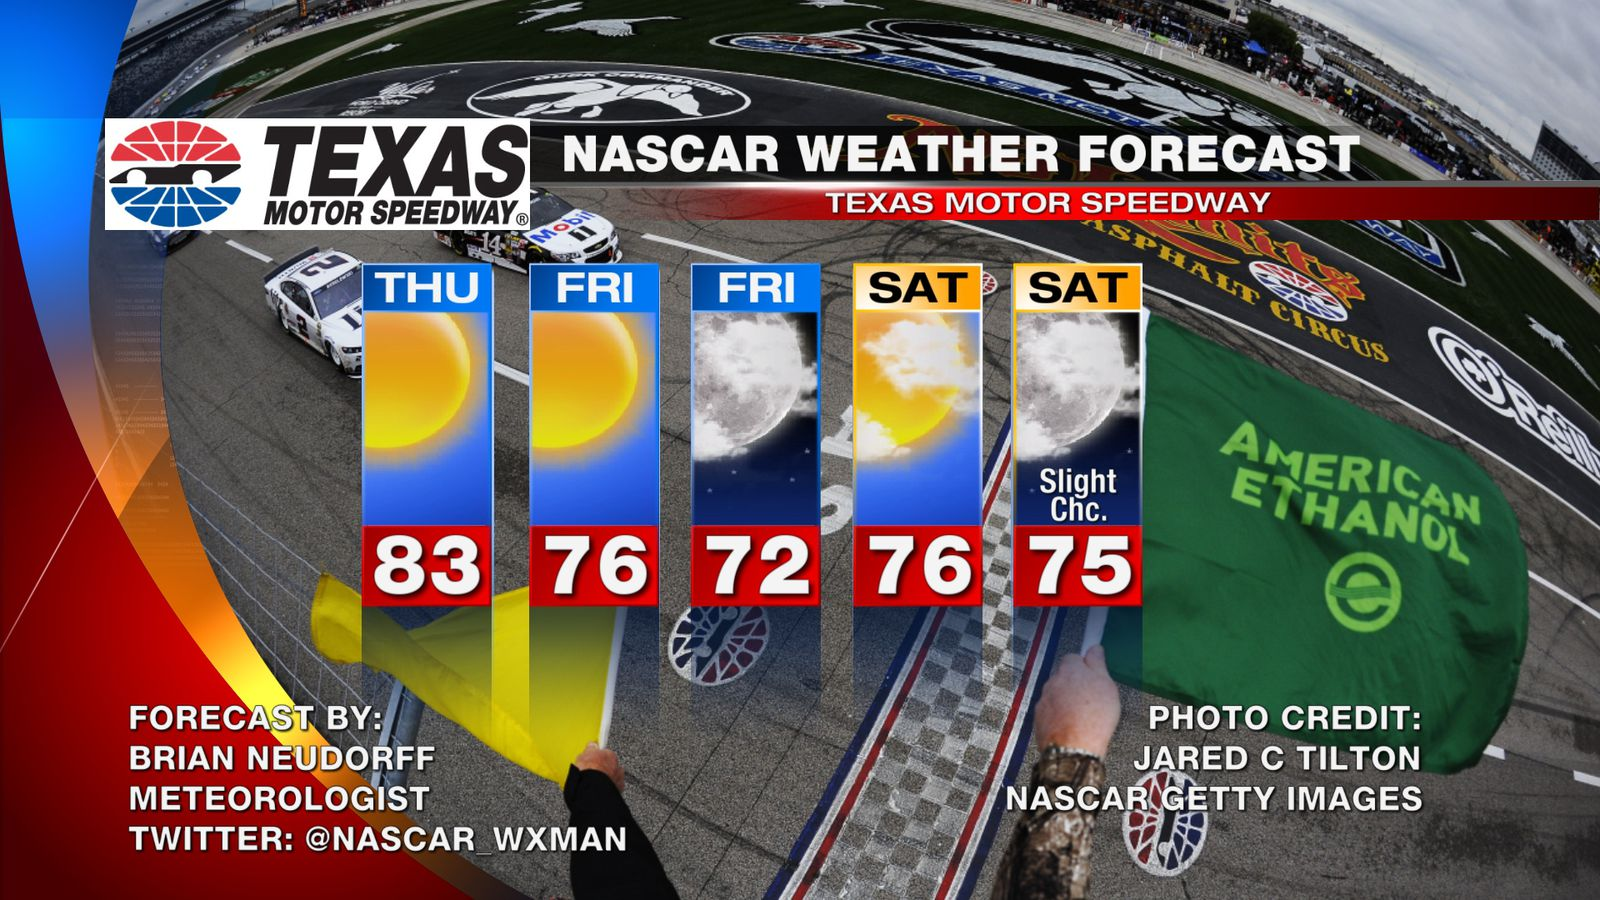 2016 Nascar At Texas Motor Speedway Weather Forecast